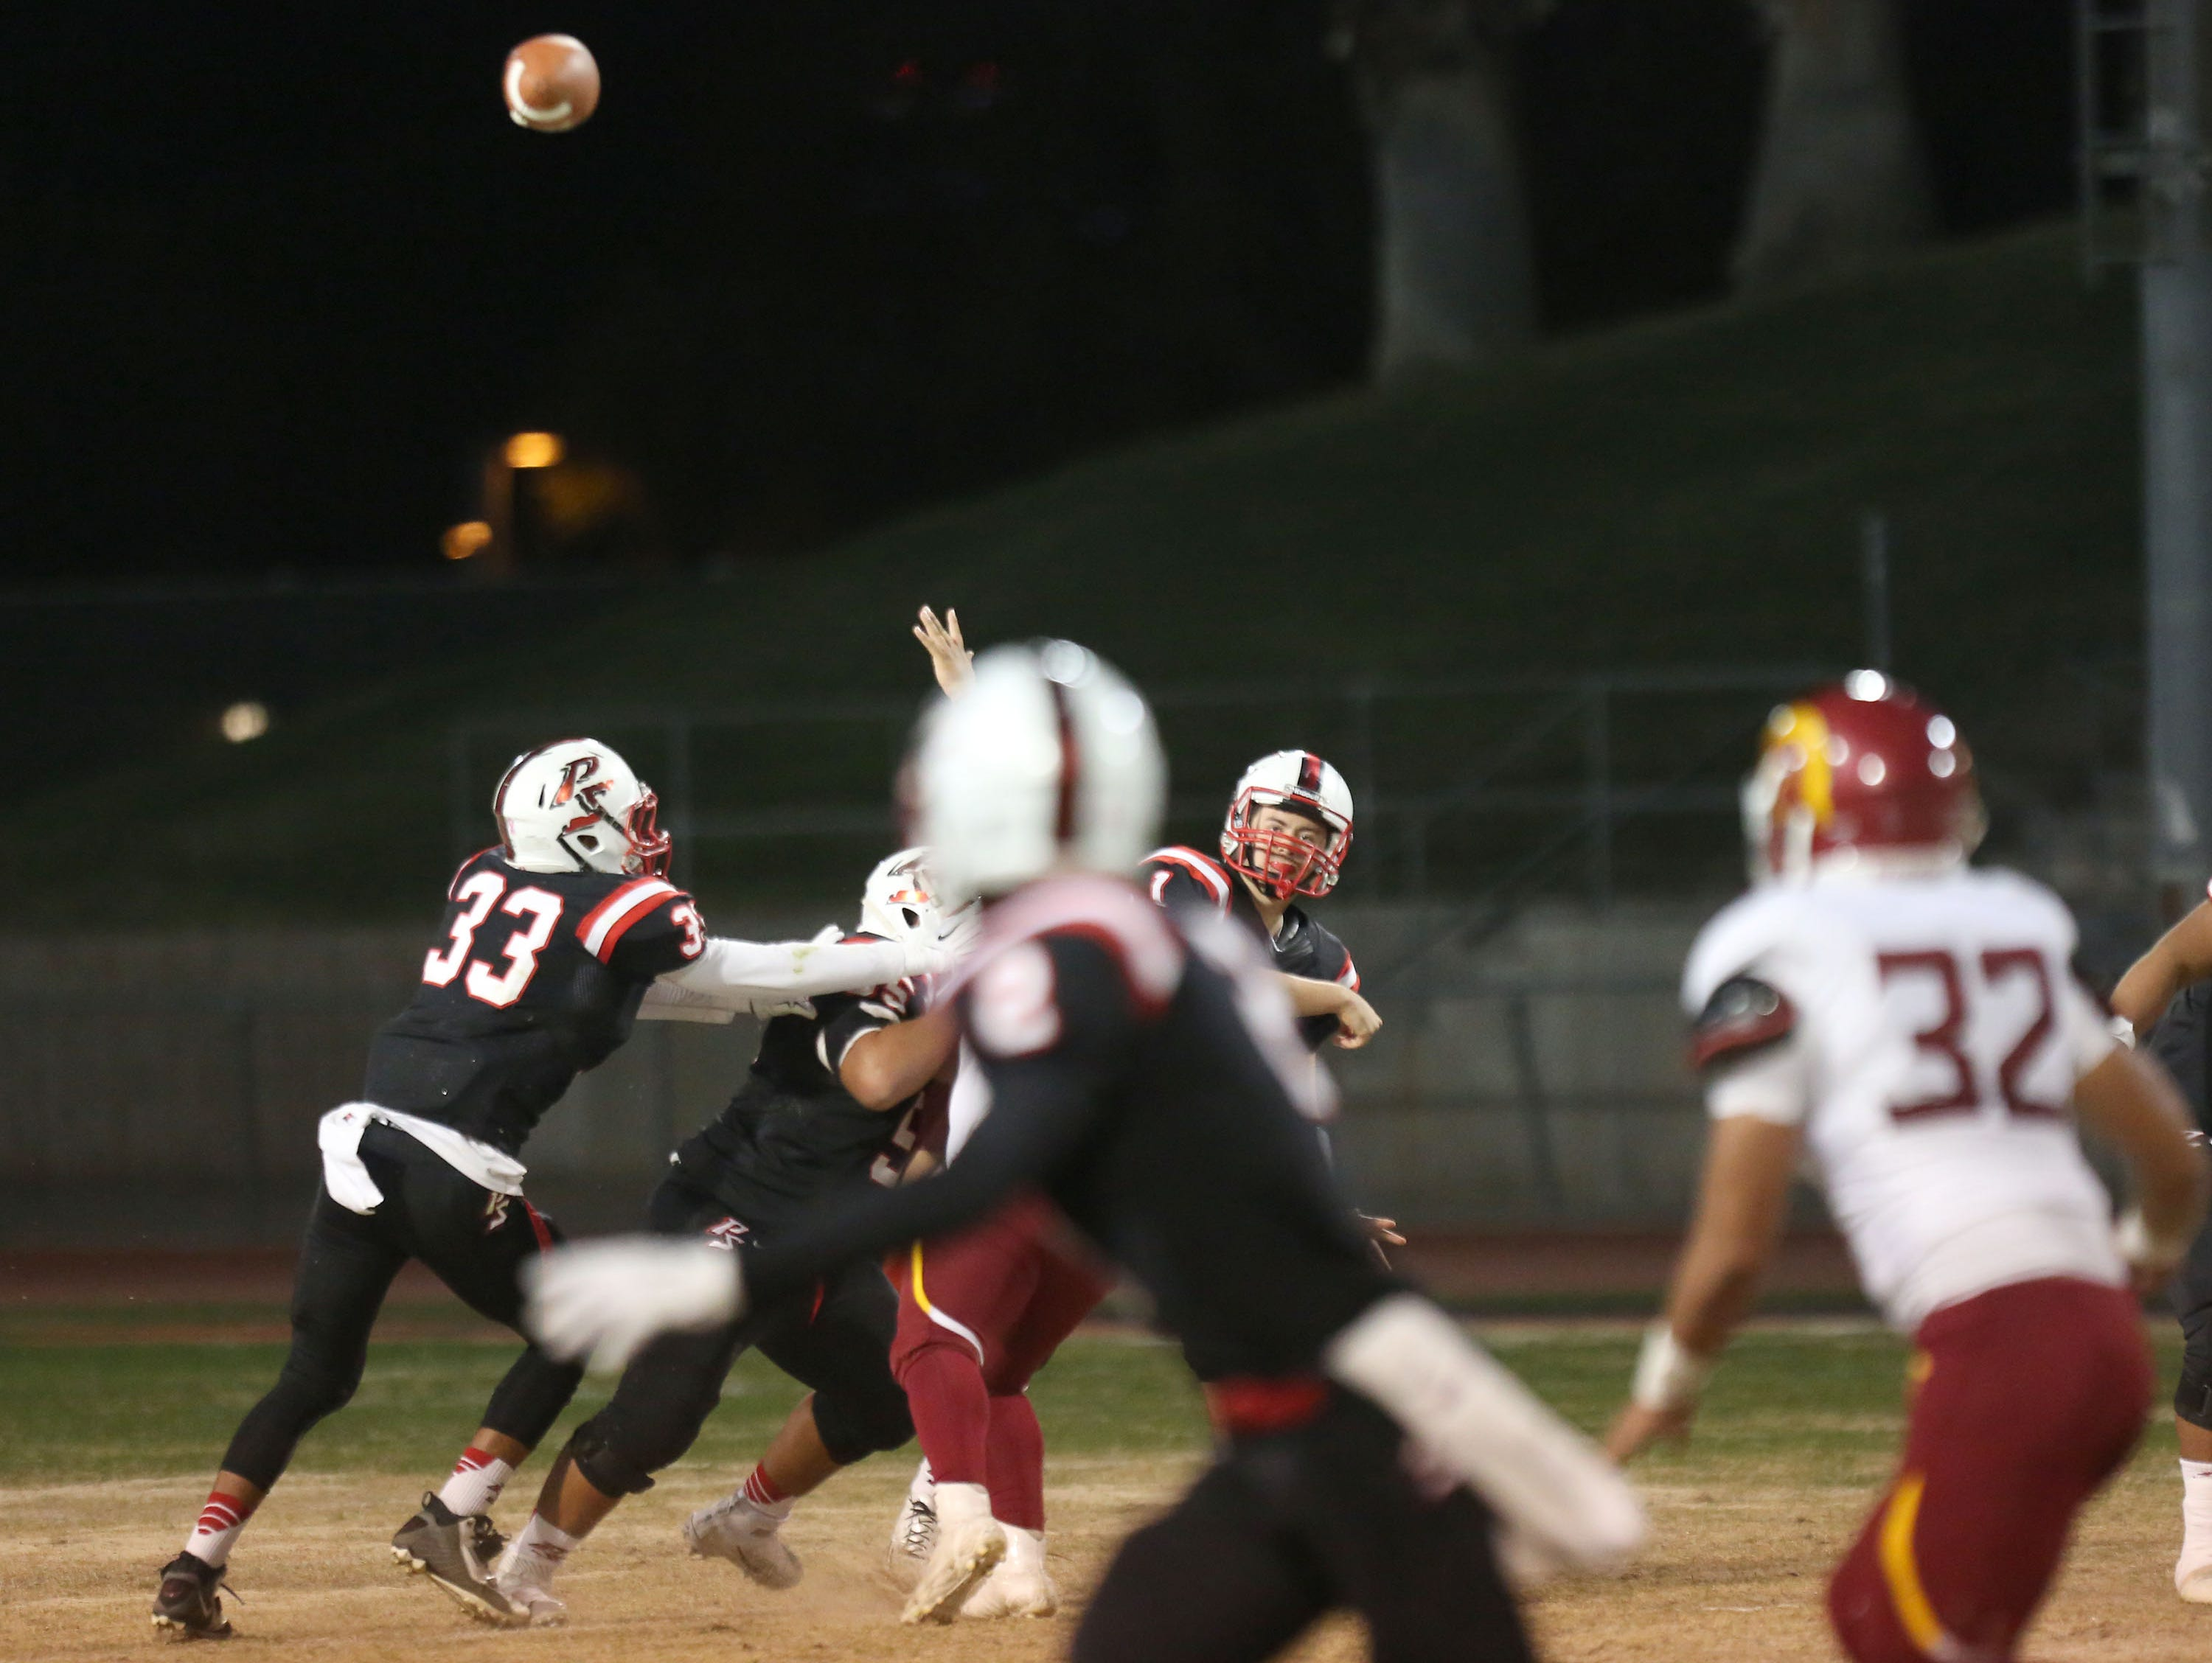 Quarterback Will Olvera throws one of his six touchdown passes during the Indians win Friday, November 13, 2015.